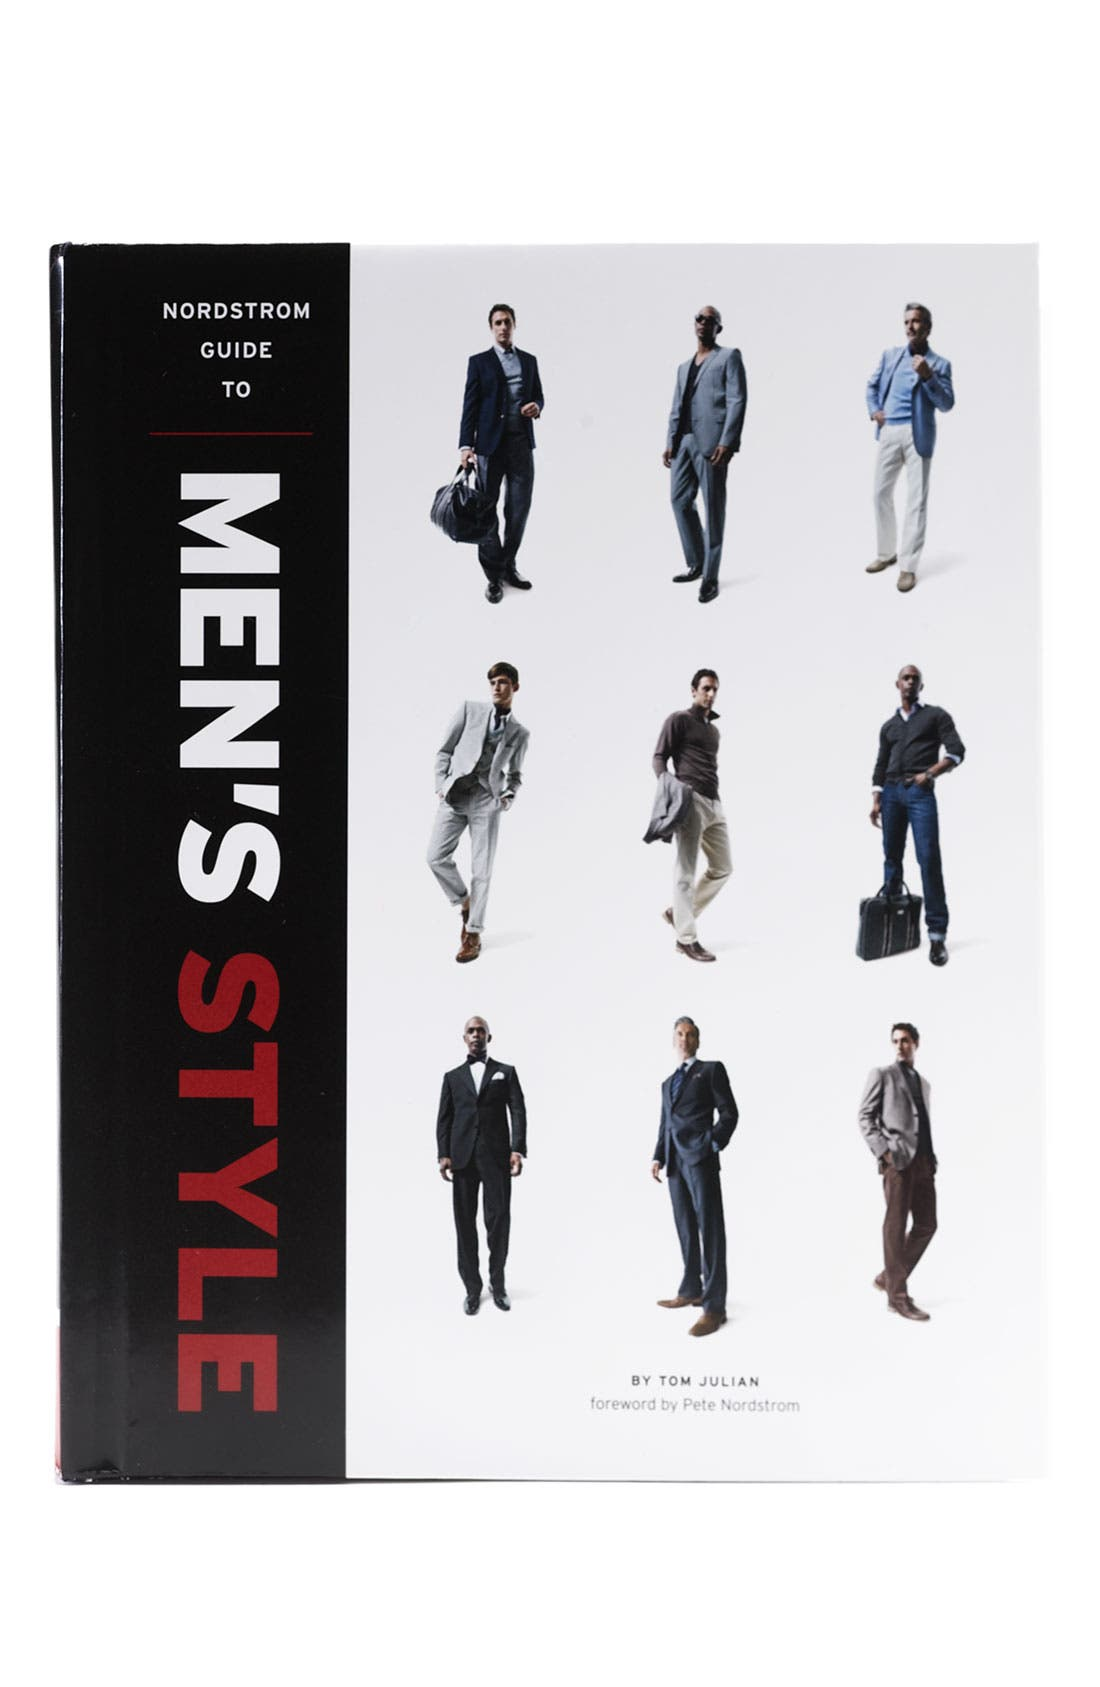 Alternate Image 1 Selected - Nordstrom Guide to Men's Style